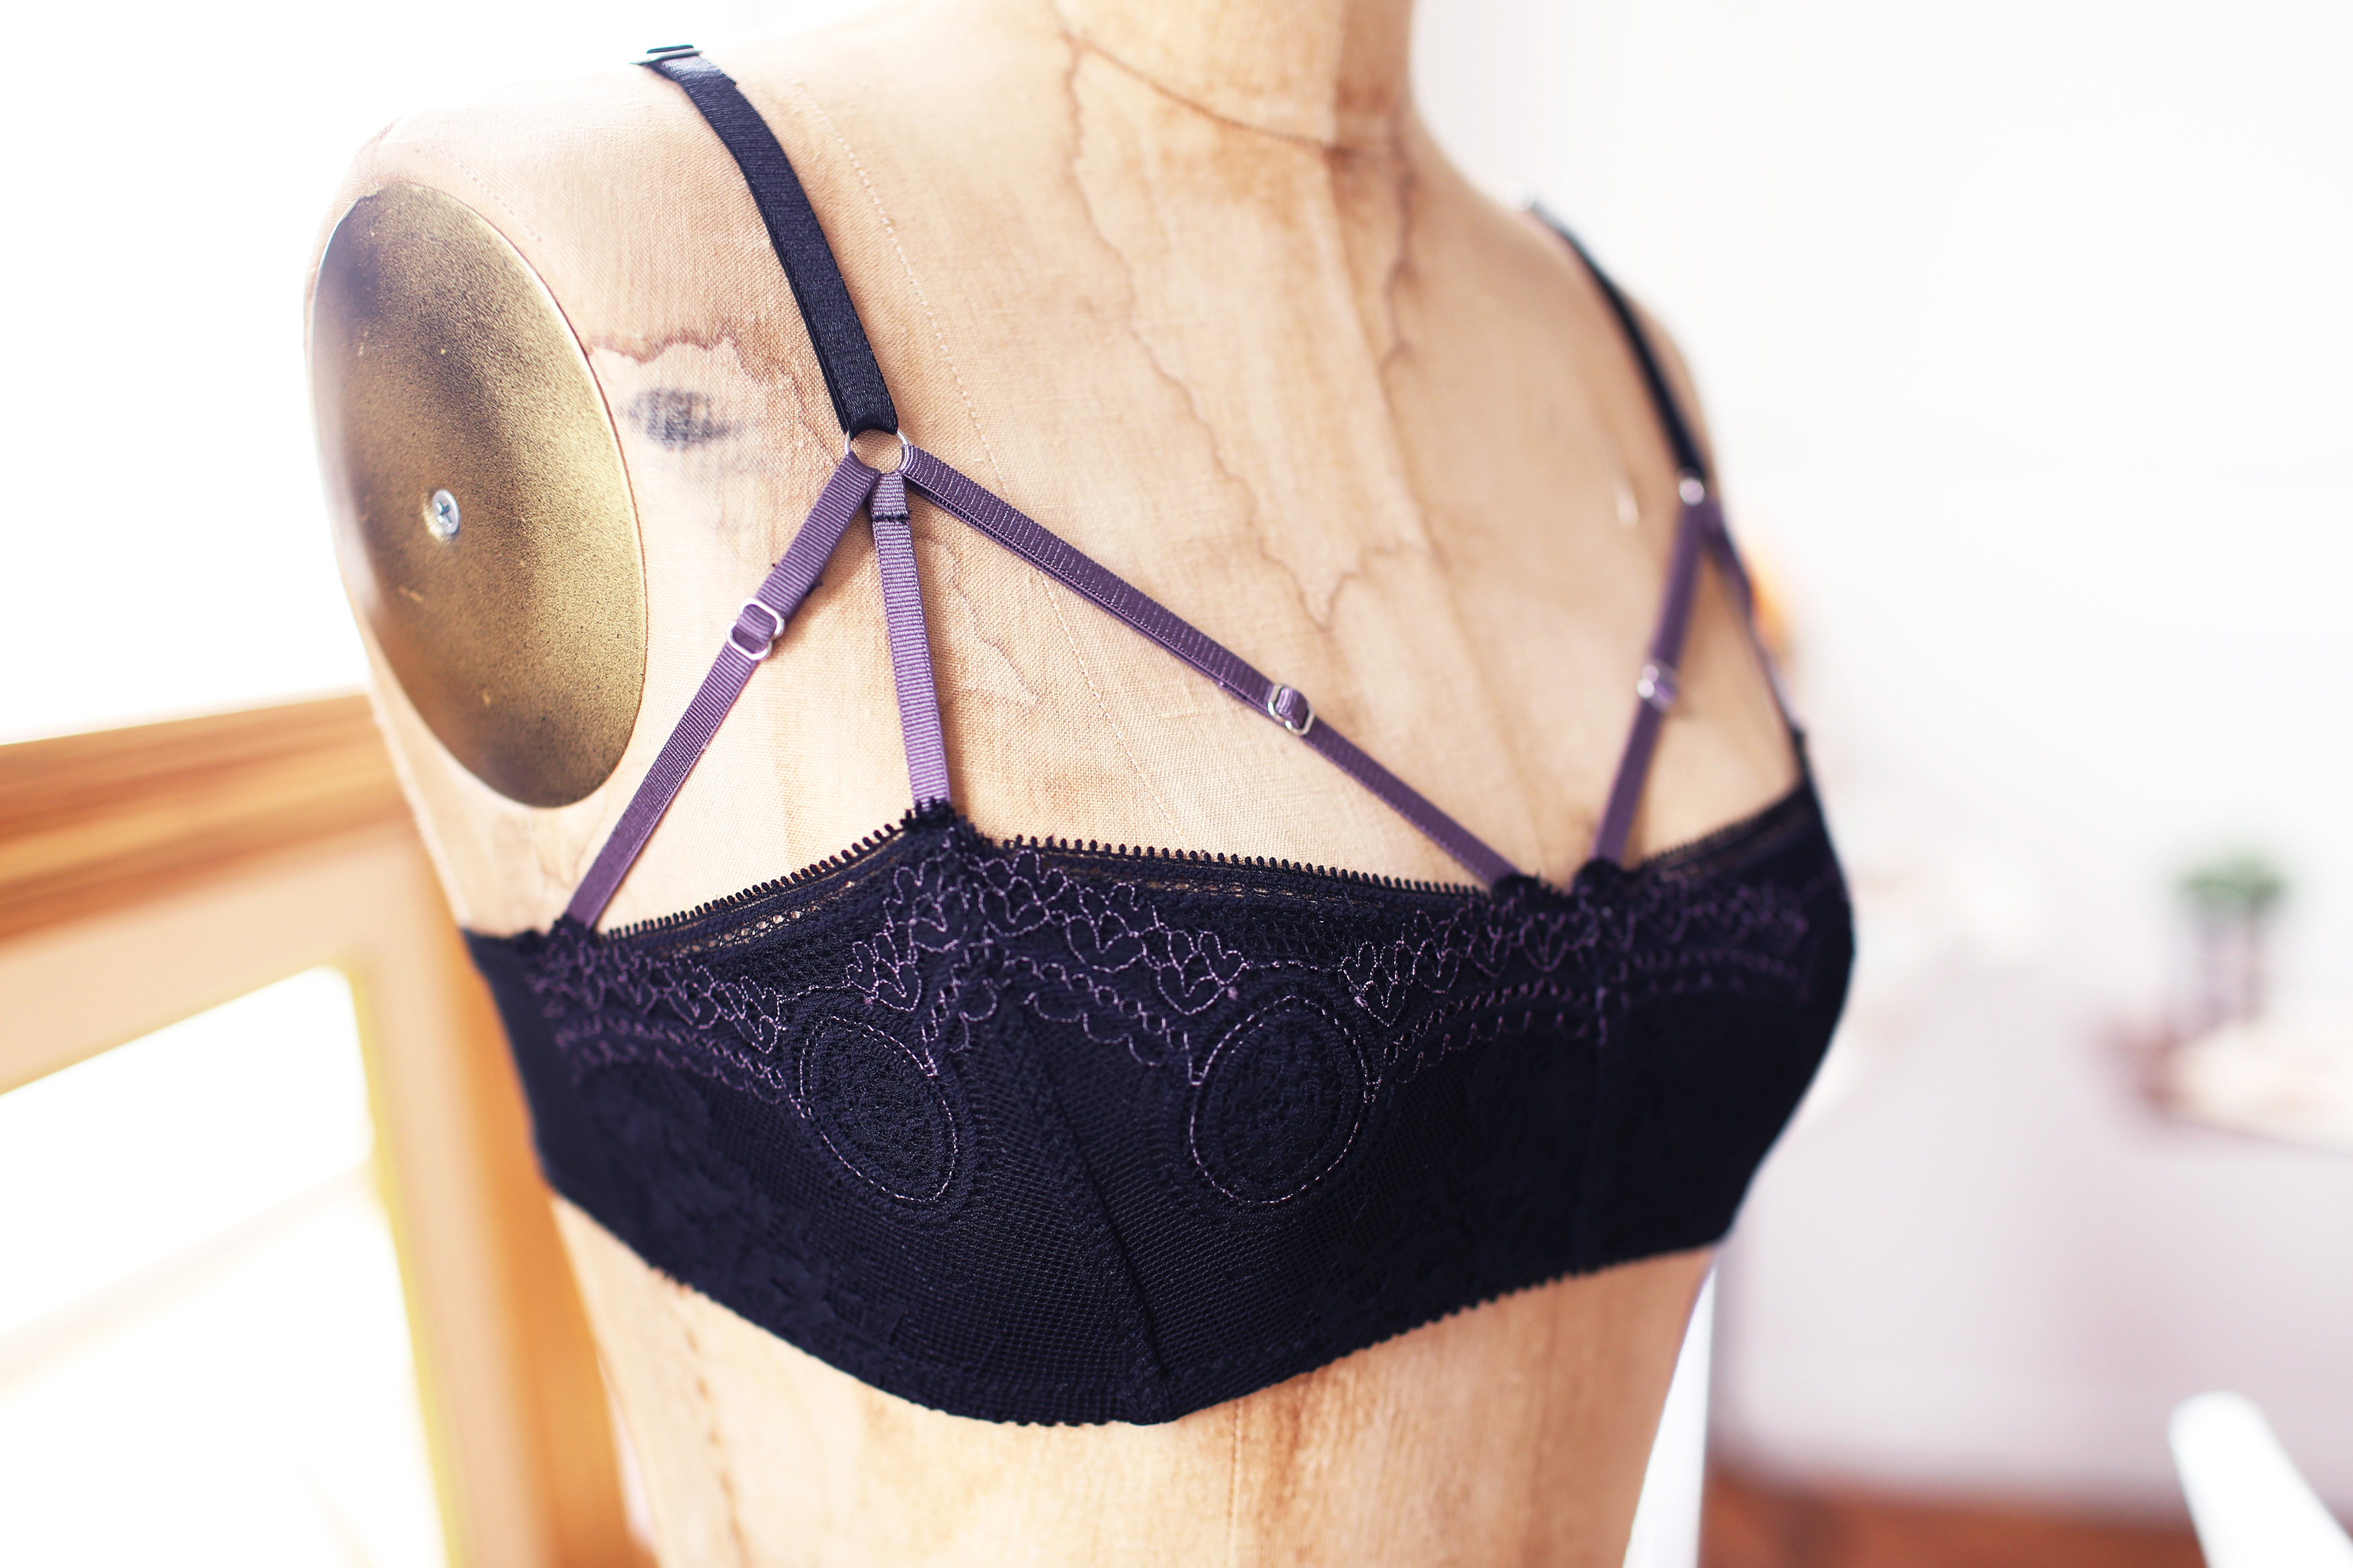 DIY Black Purple Balconette Bralette Bra Making Tailor Made Shop